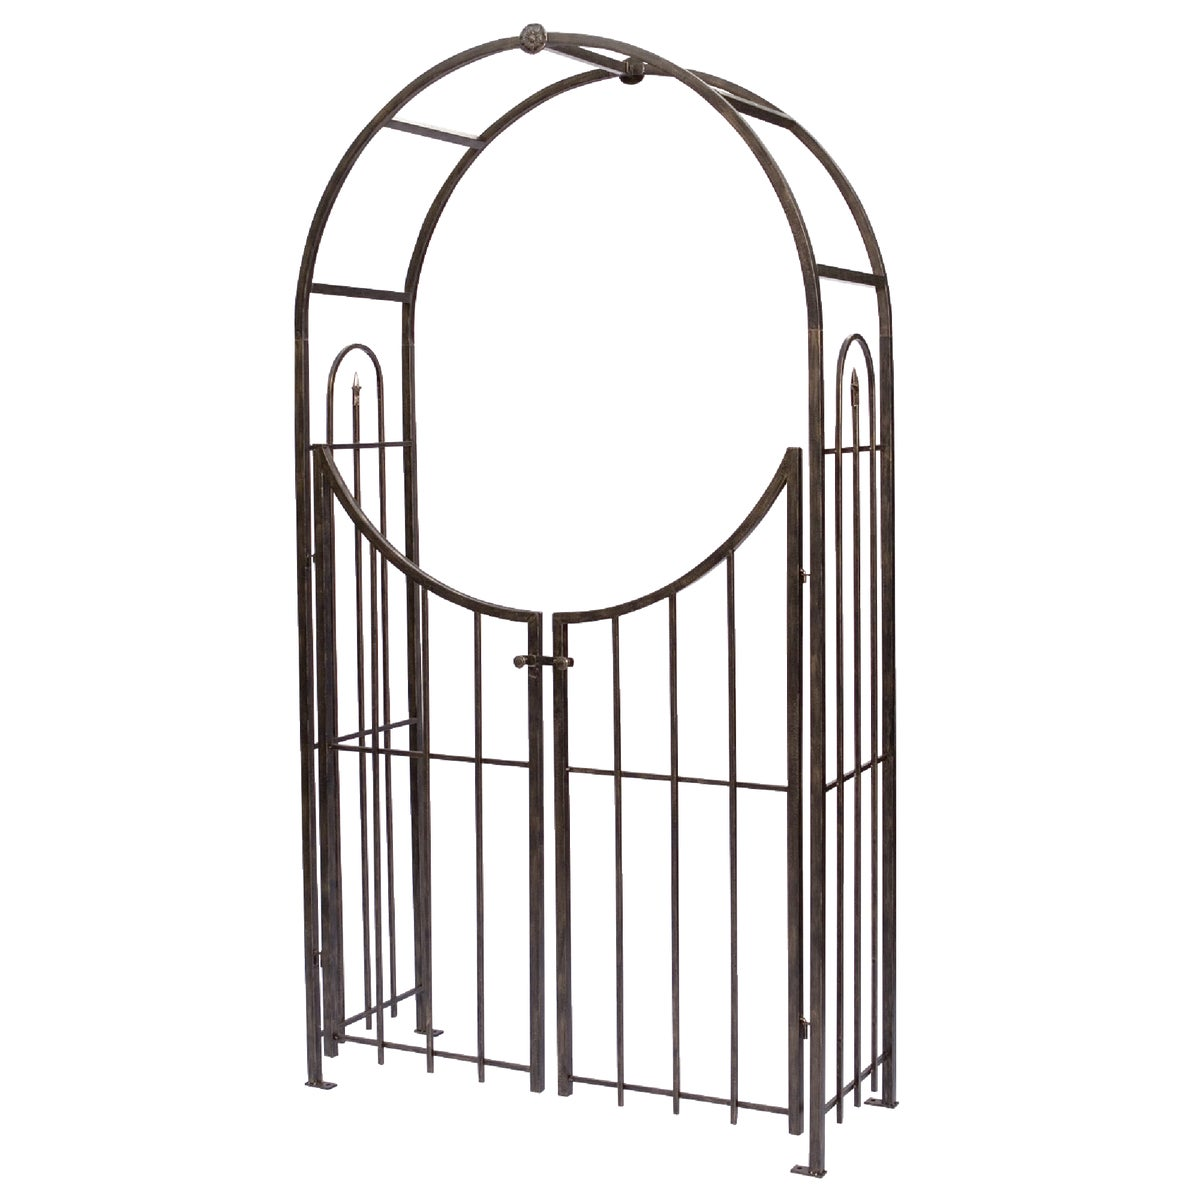 Panacea Products BRONZE GARDEN ARBOR 89096